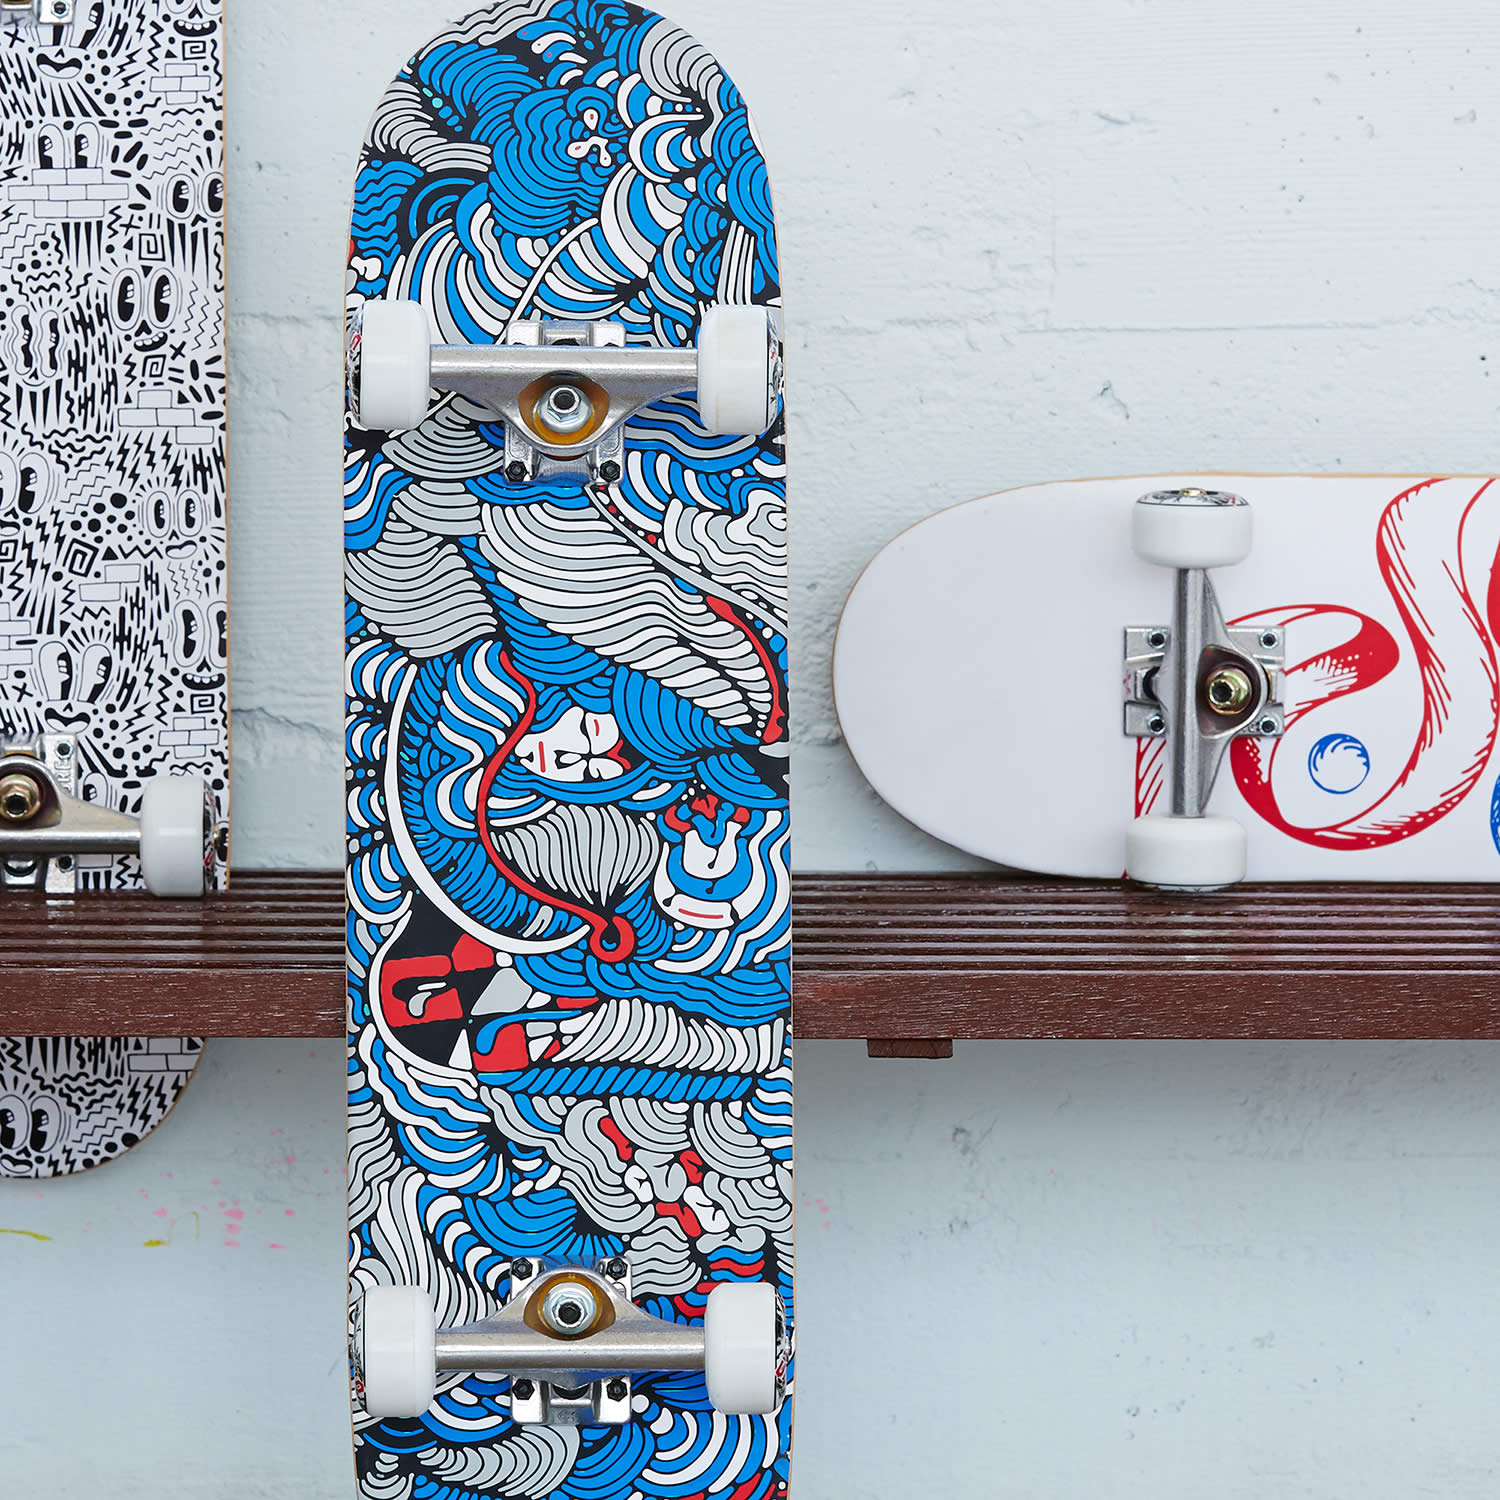 skateboards by by PepsiCo Design & Innovation